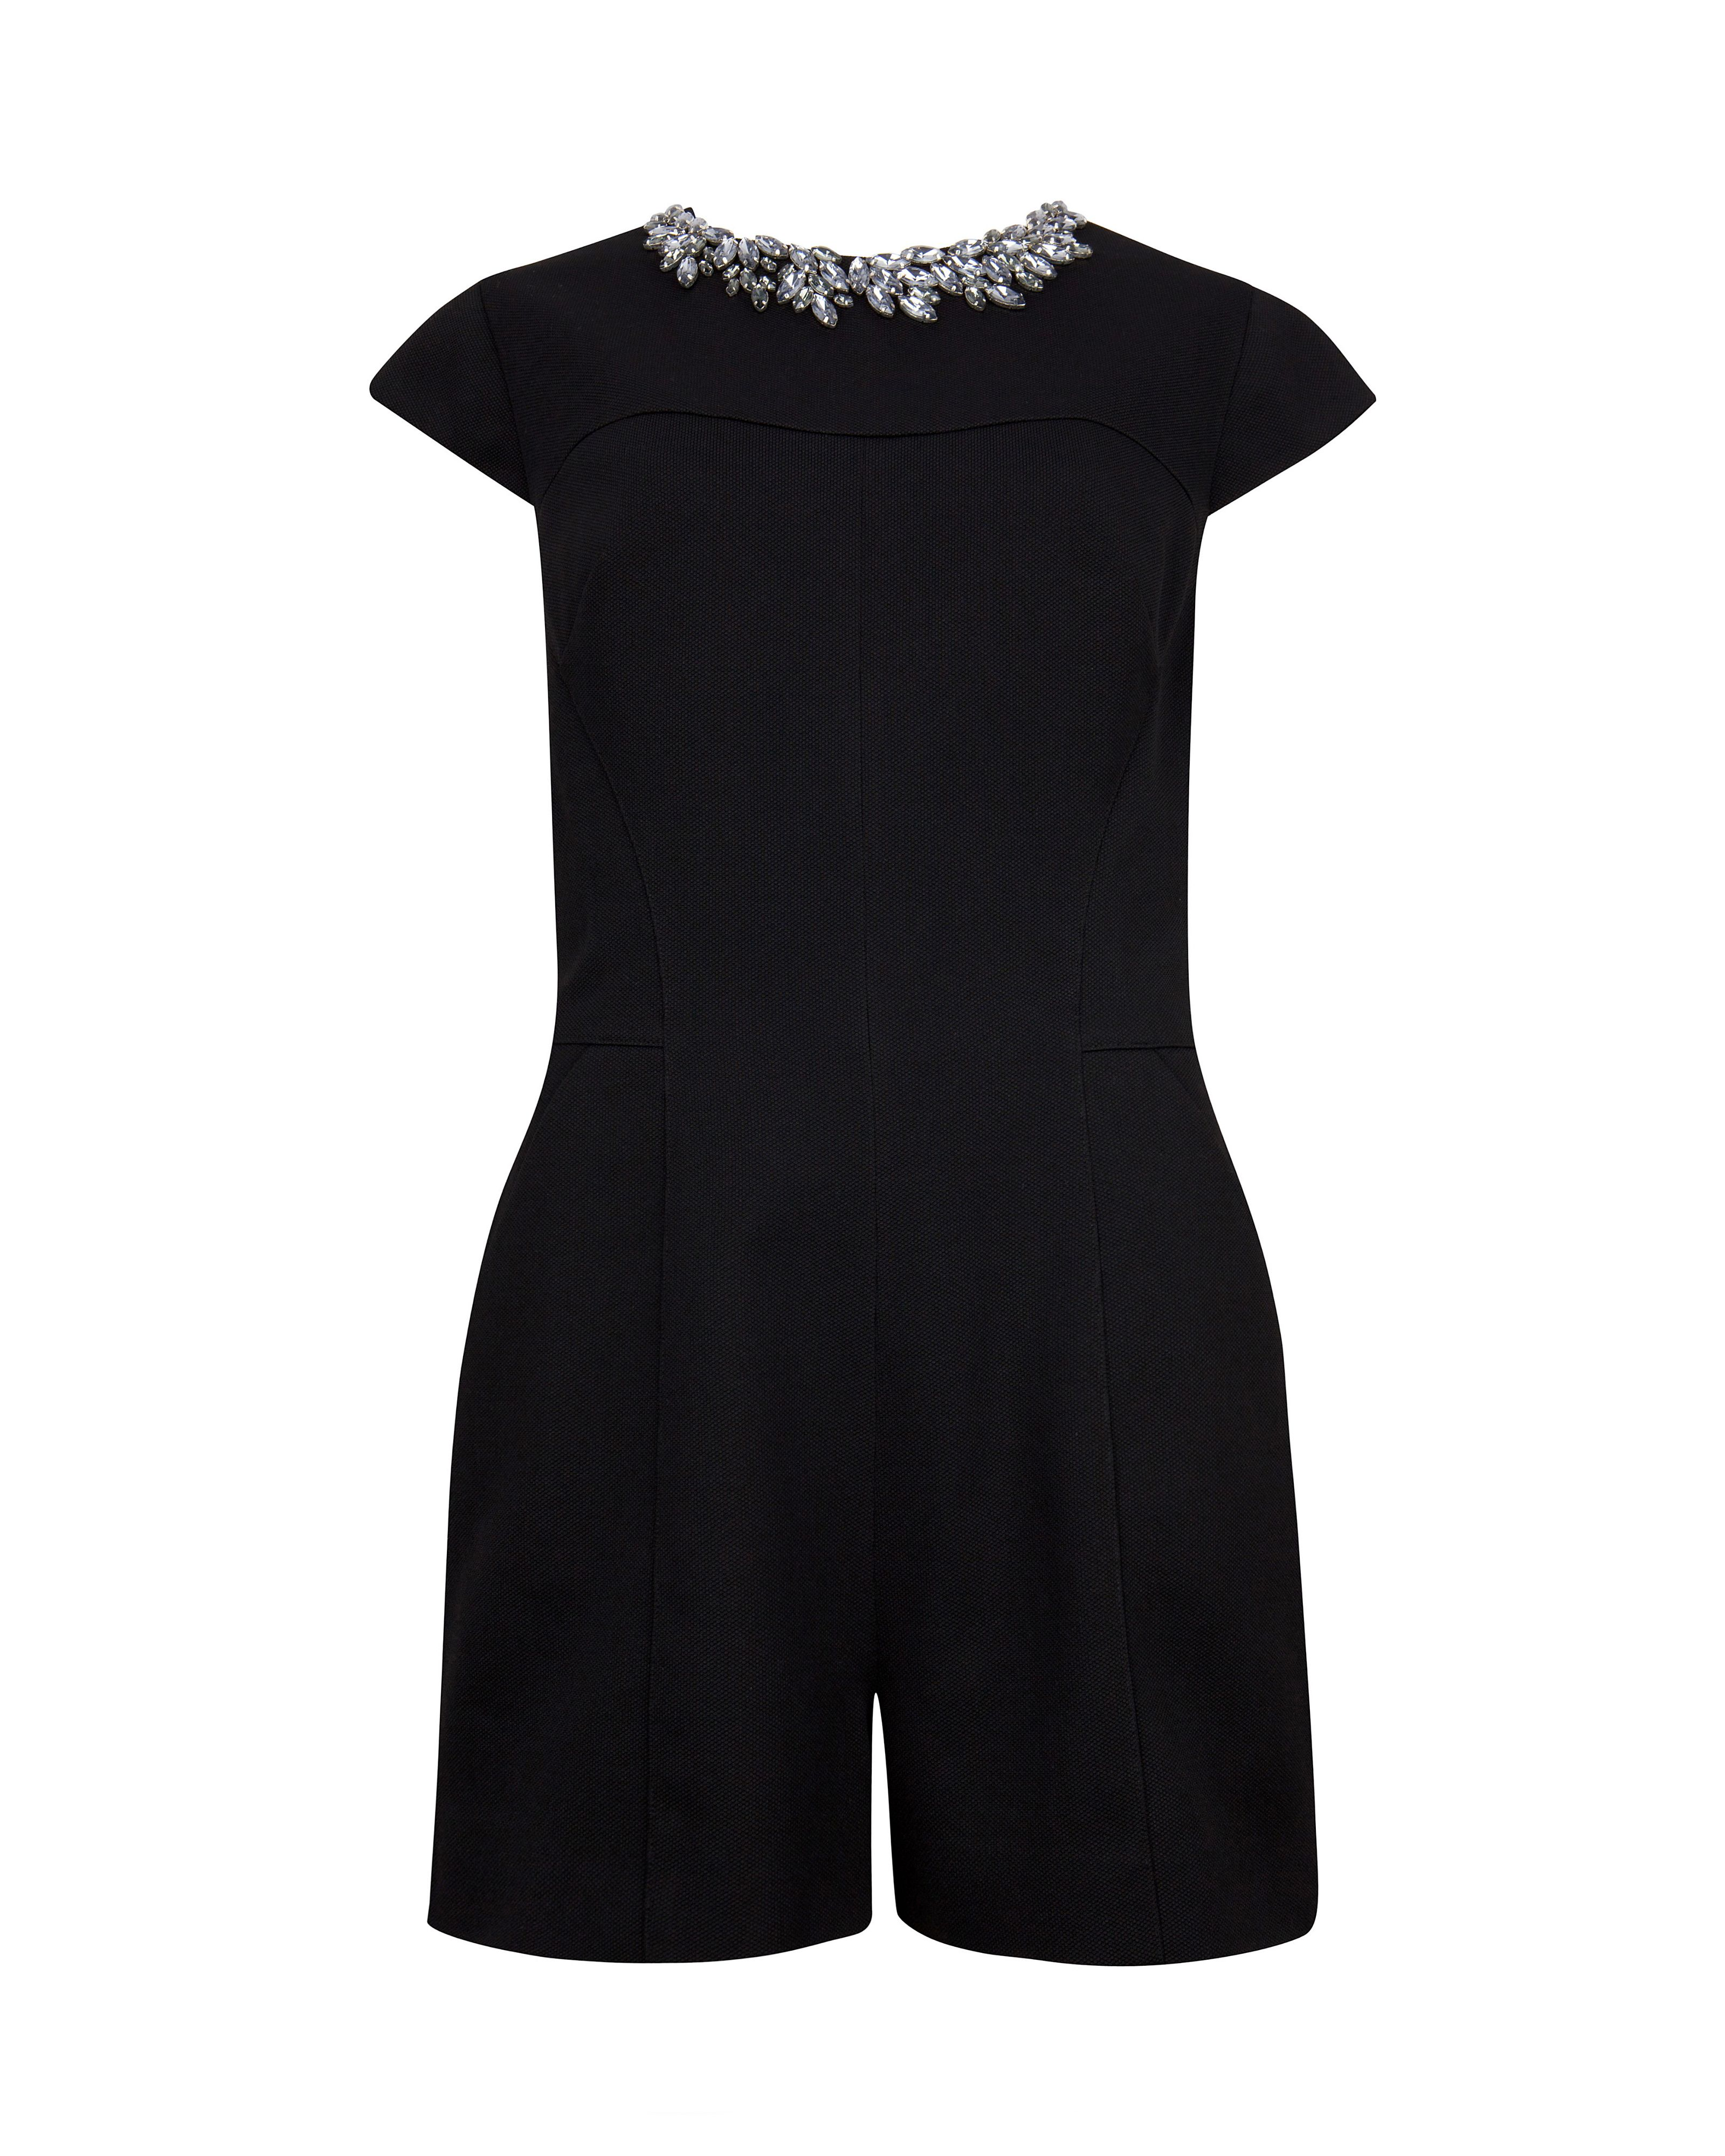 Evelin embellished neck playsuit